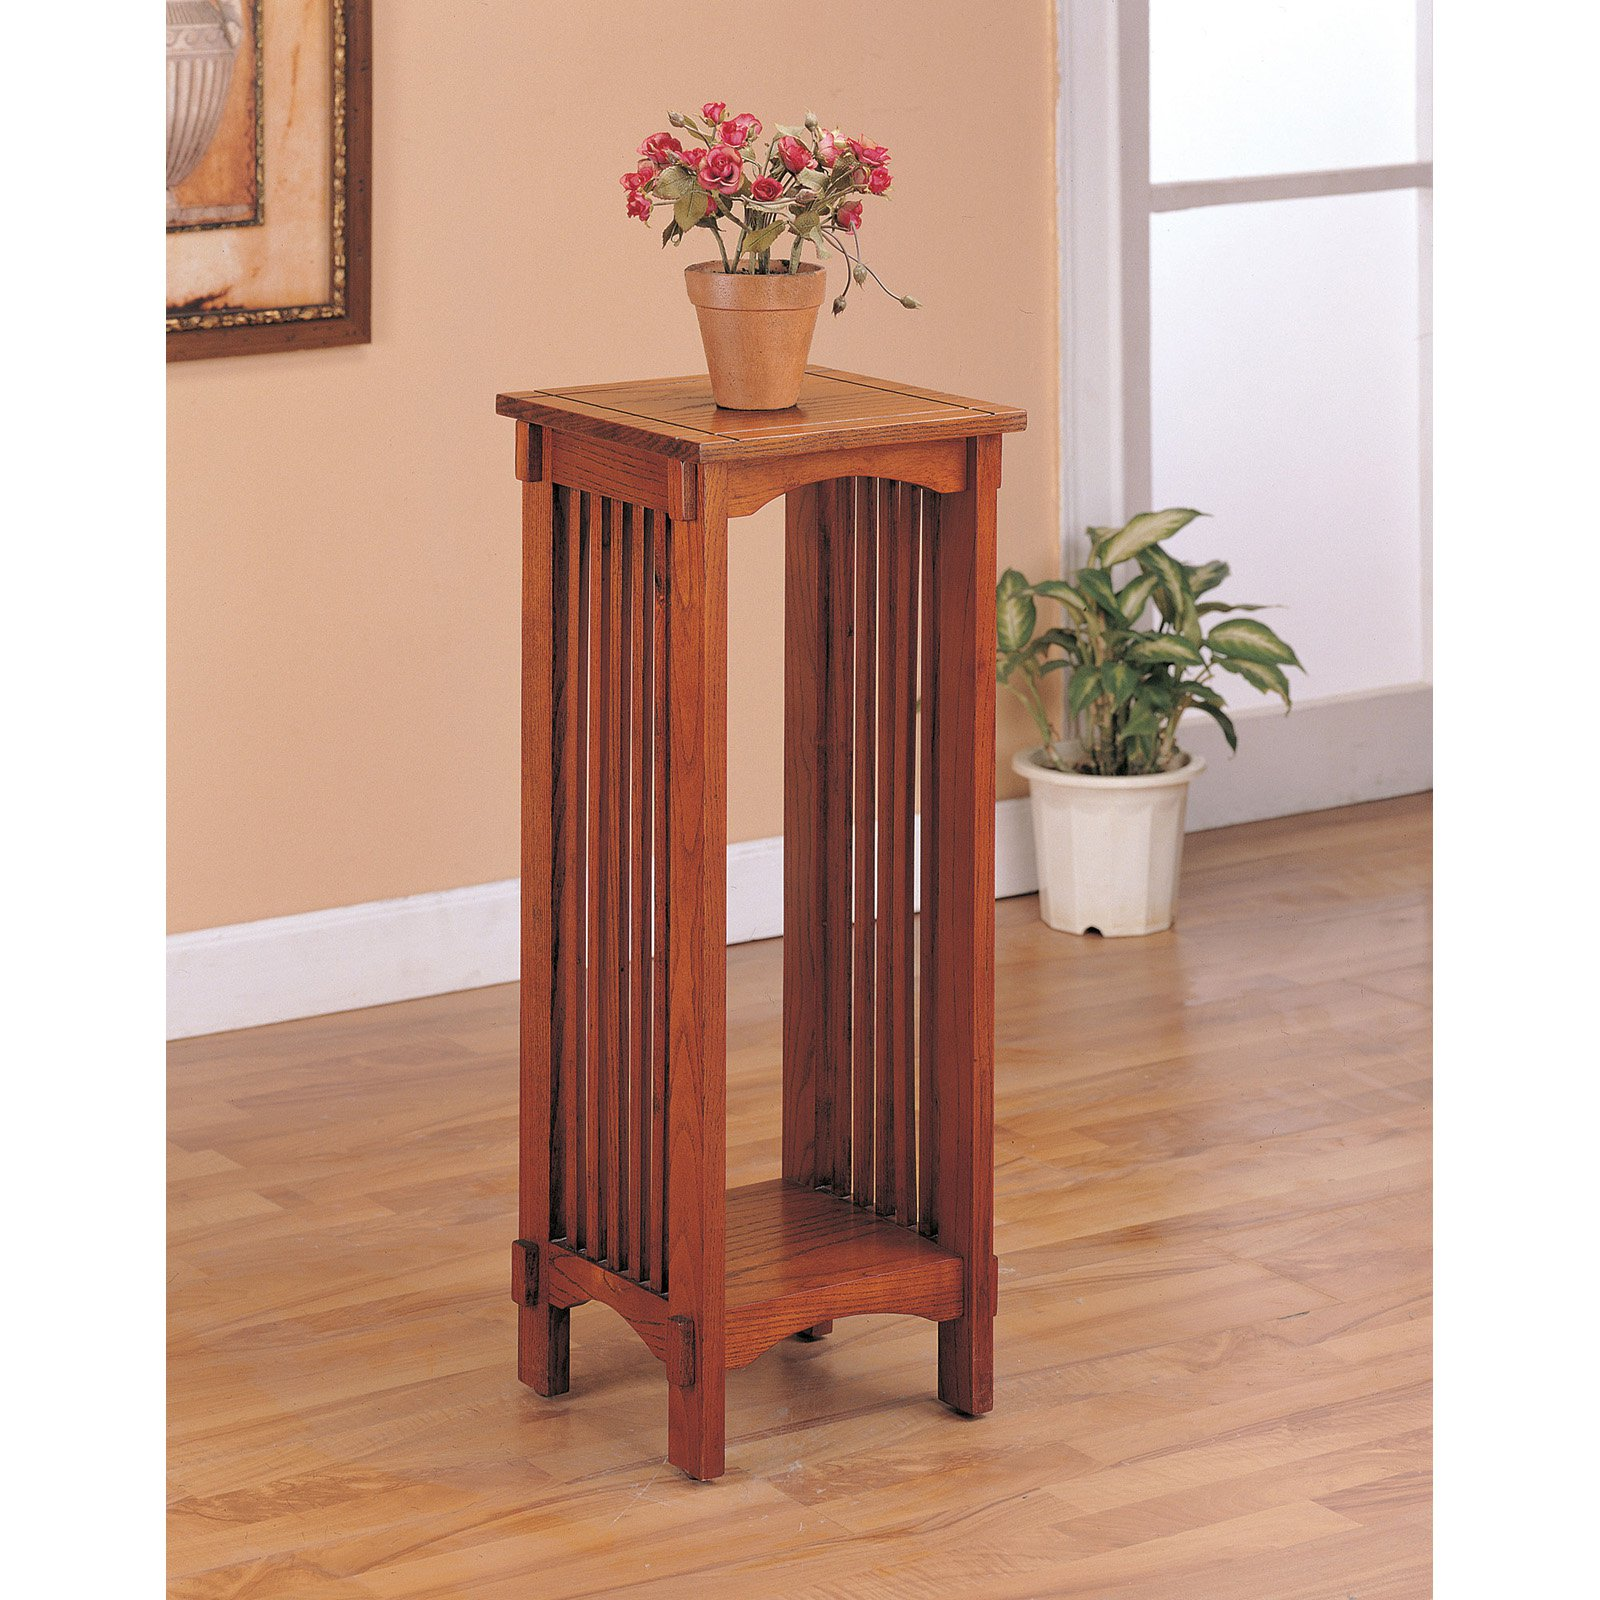 Coaster Furniture Mission Plant Stand